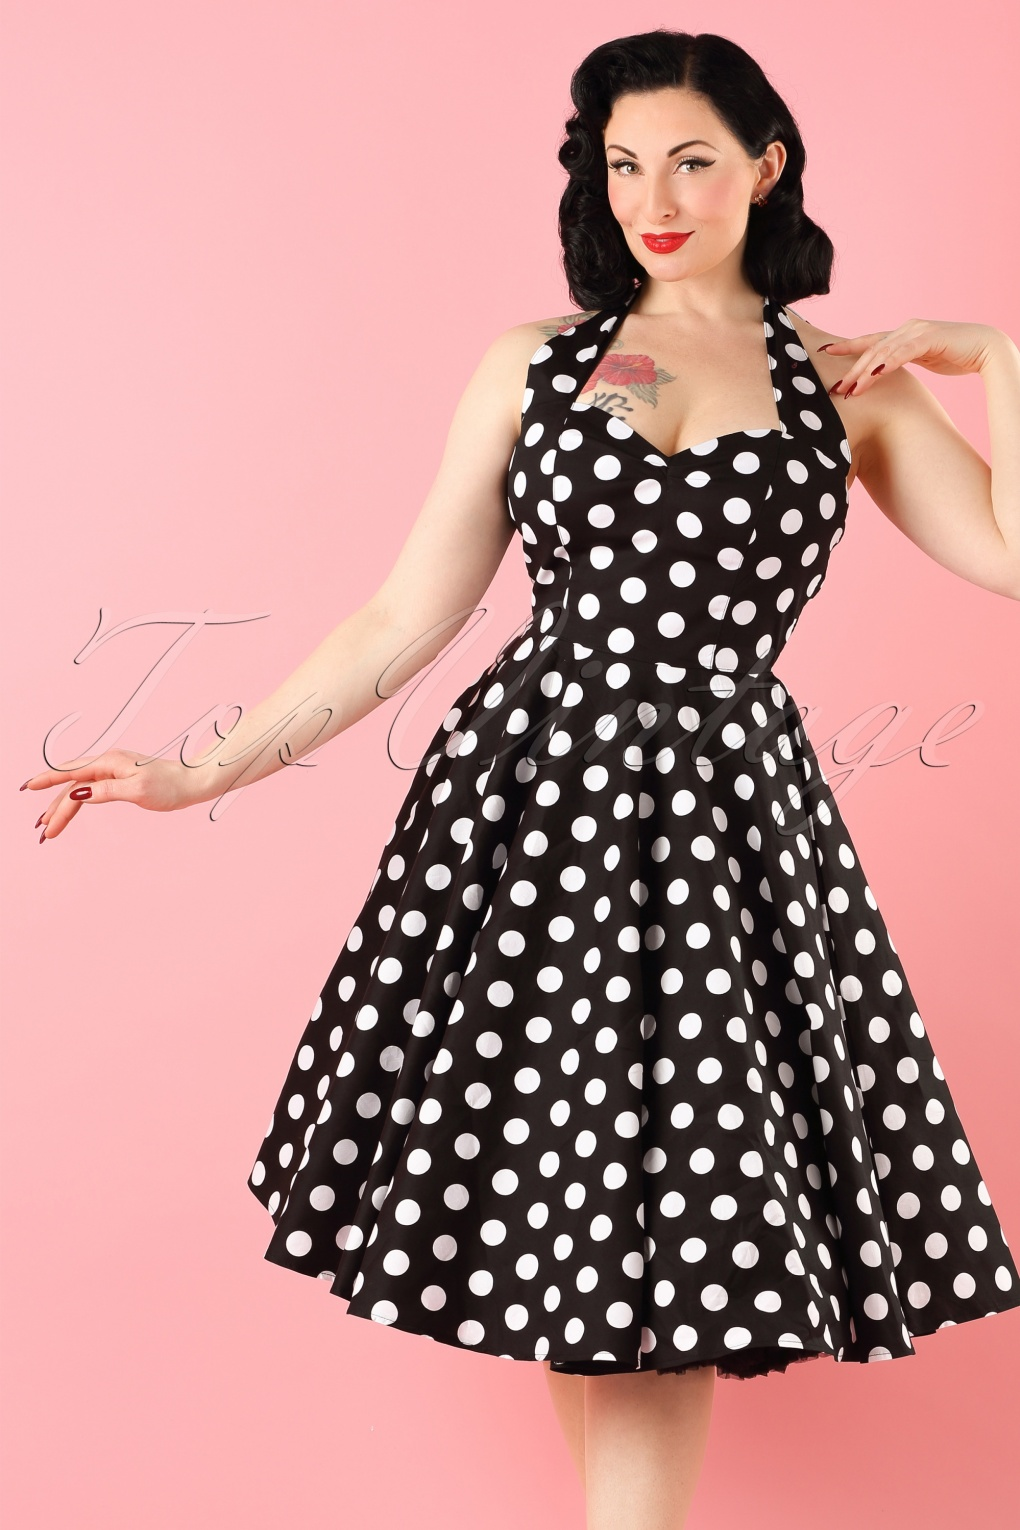 Vintage Cocktail Dresses, Party Dresses 50s Retro halter 50s Meriam Swing dress in Polka black white £50.94 AT vintagedancer.com